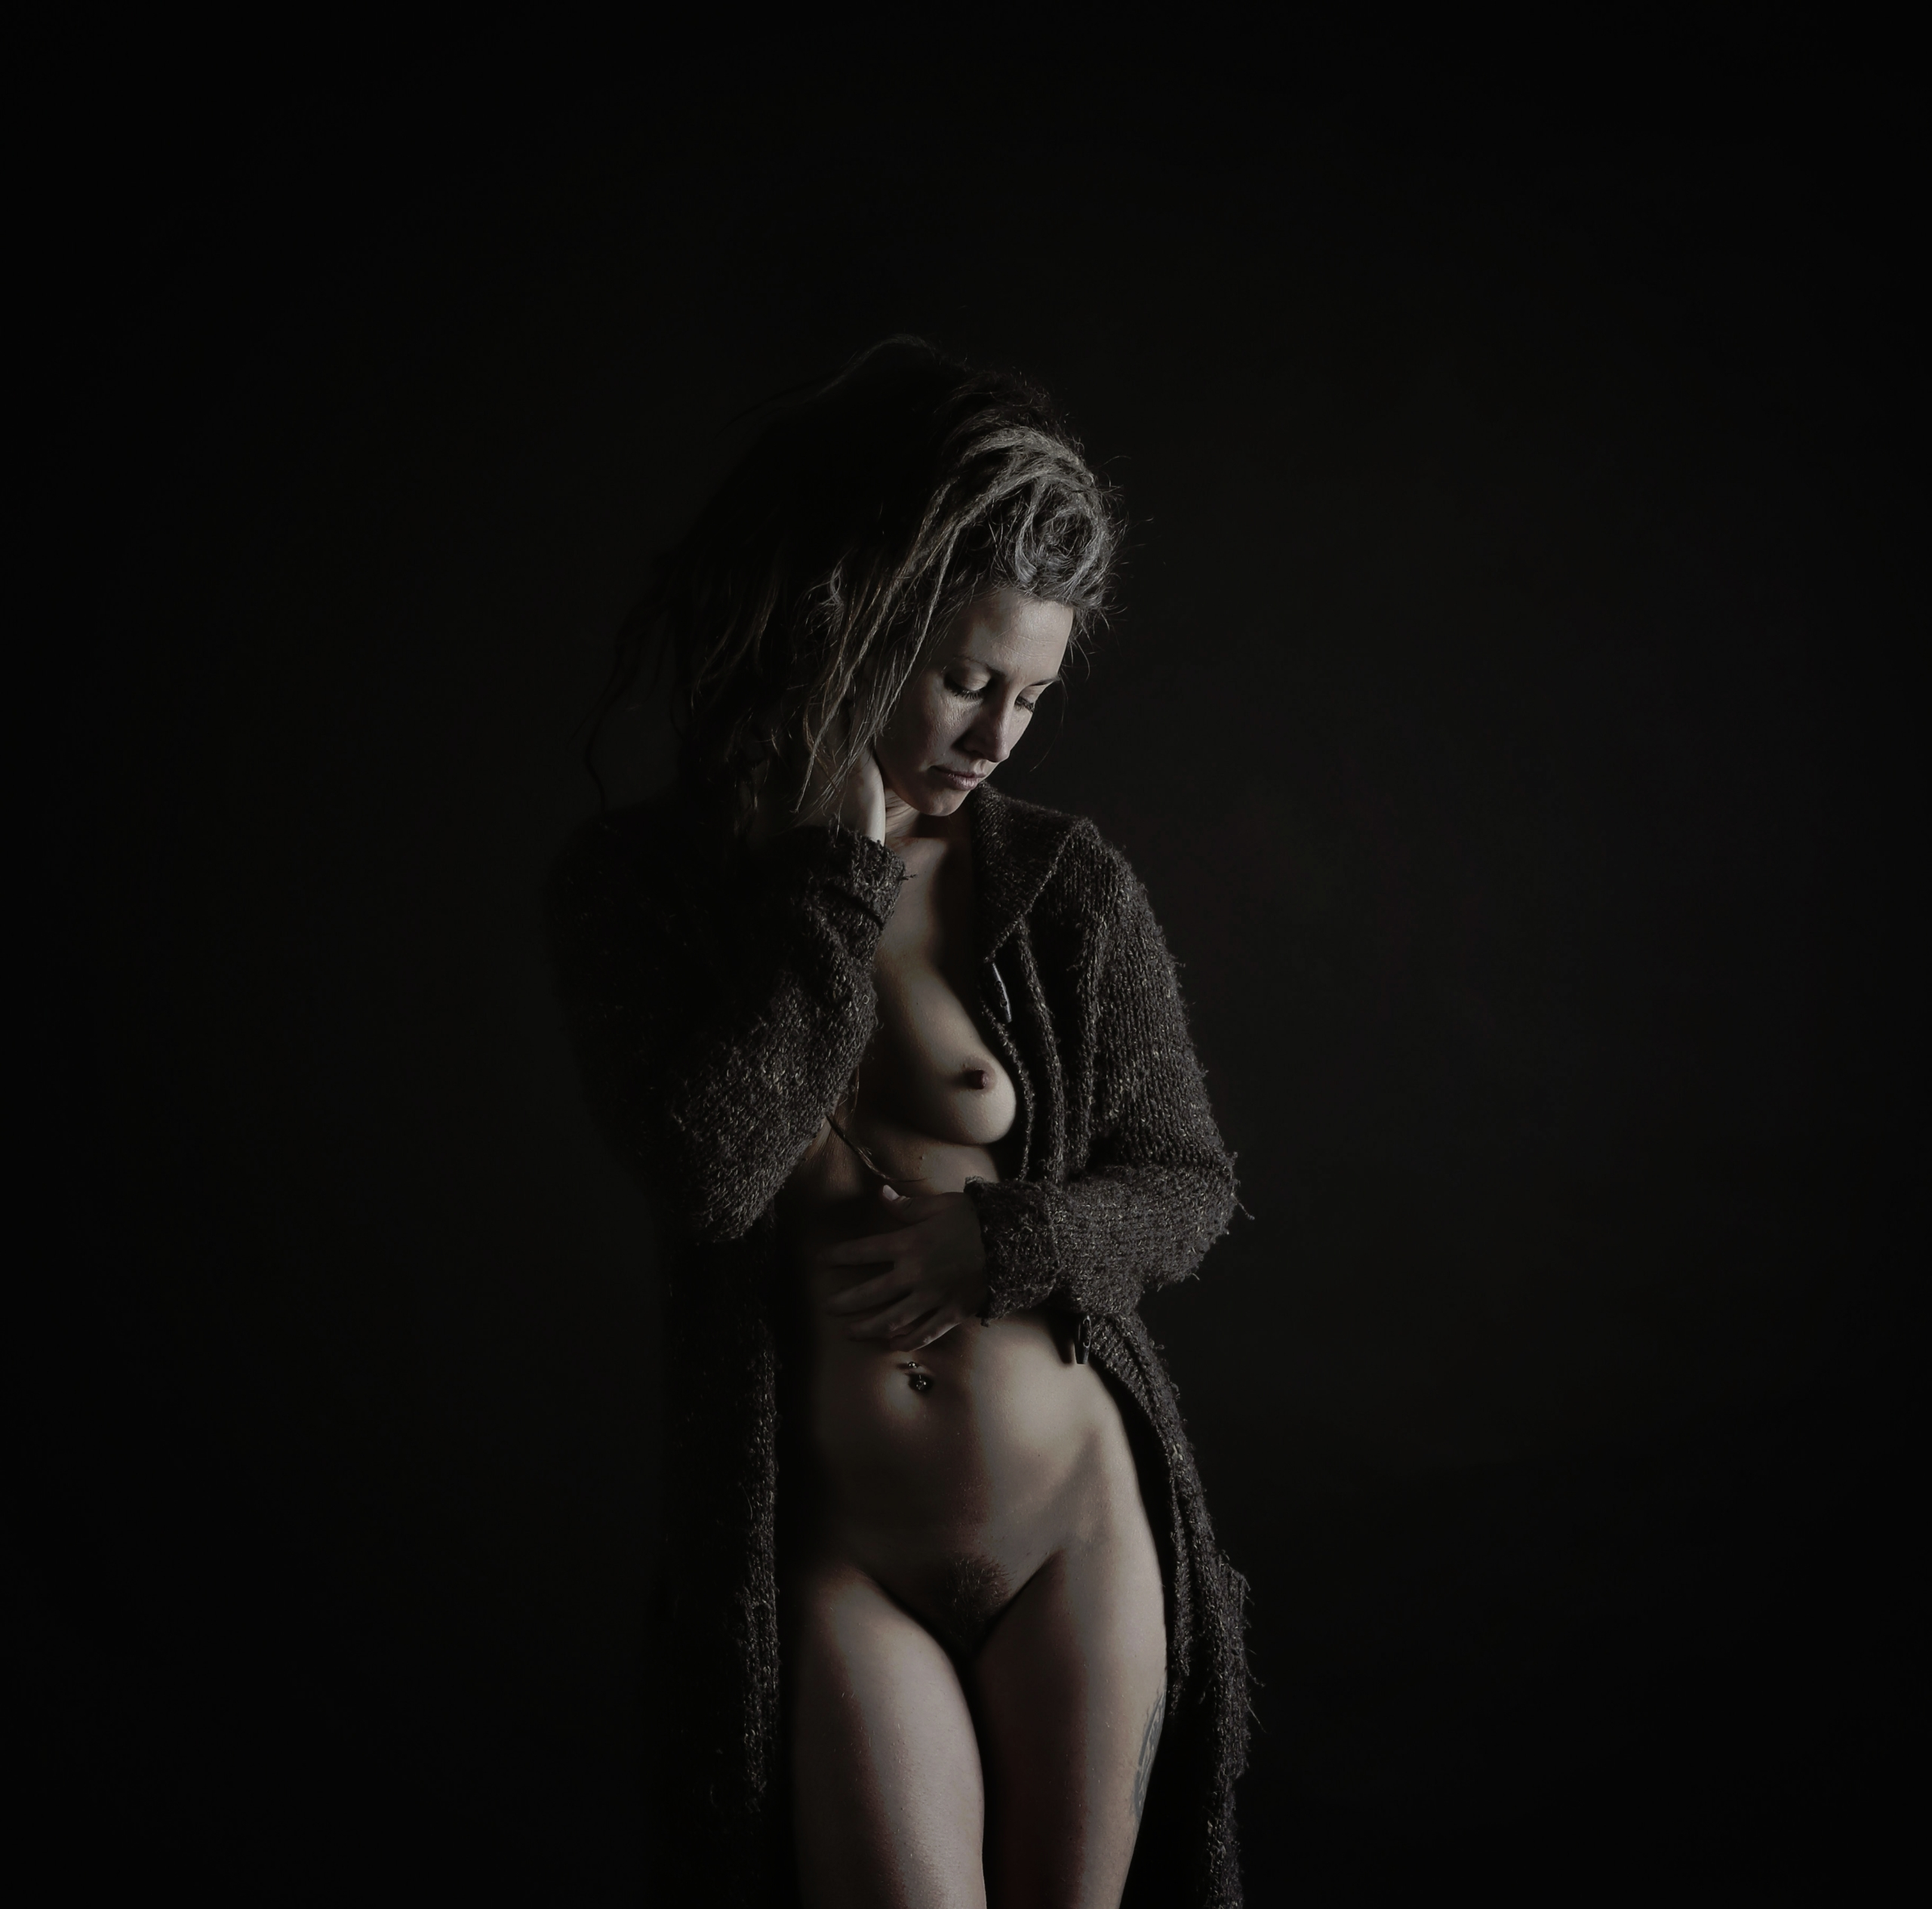 Model: Carey - DarkBeauty, DarkBeautyMag - stevelease | ello